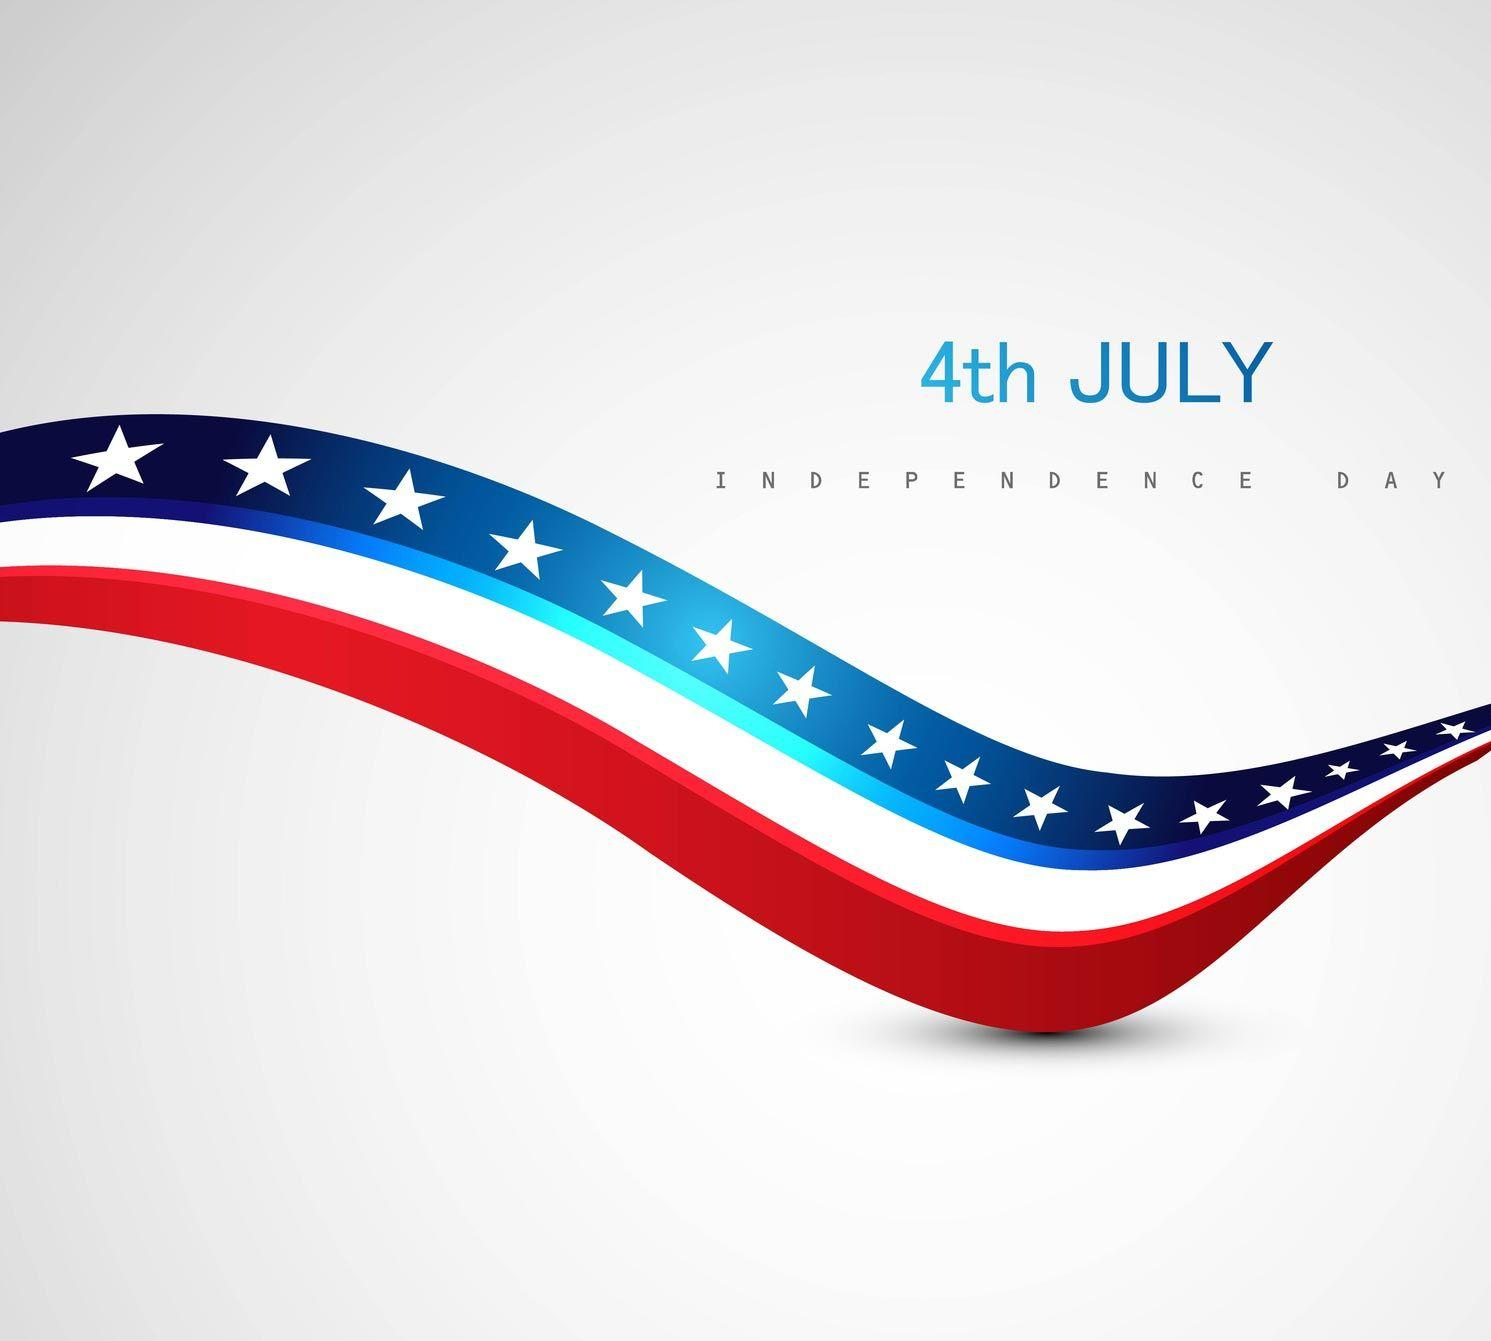 Motorcycles 4th Of July 2014 HD Wallpaper #6140 Wallpaper | High ...